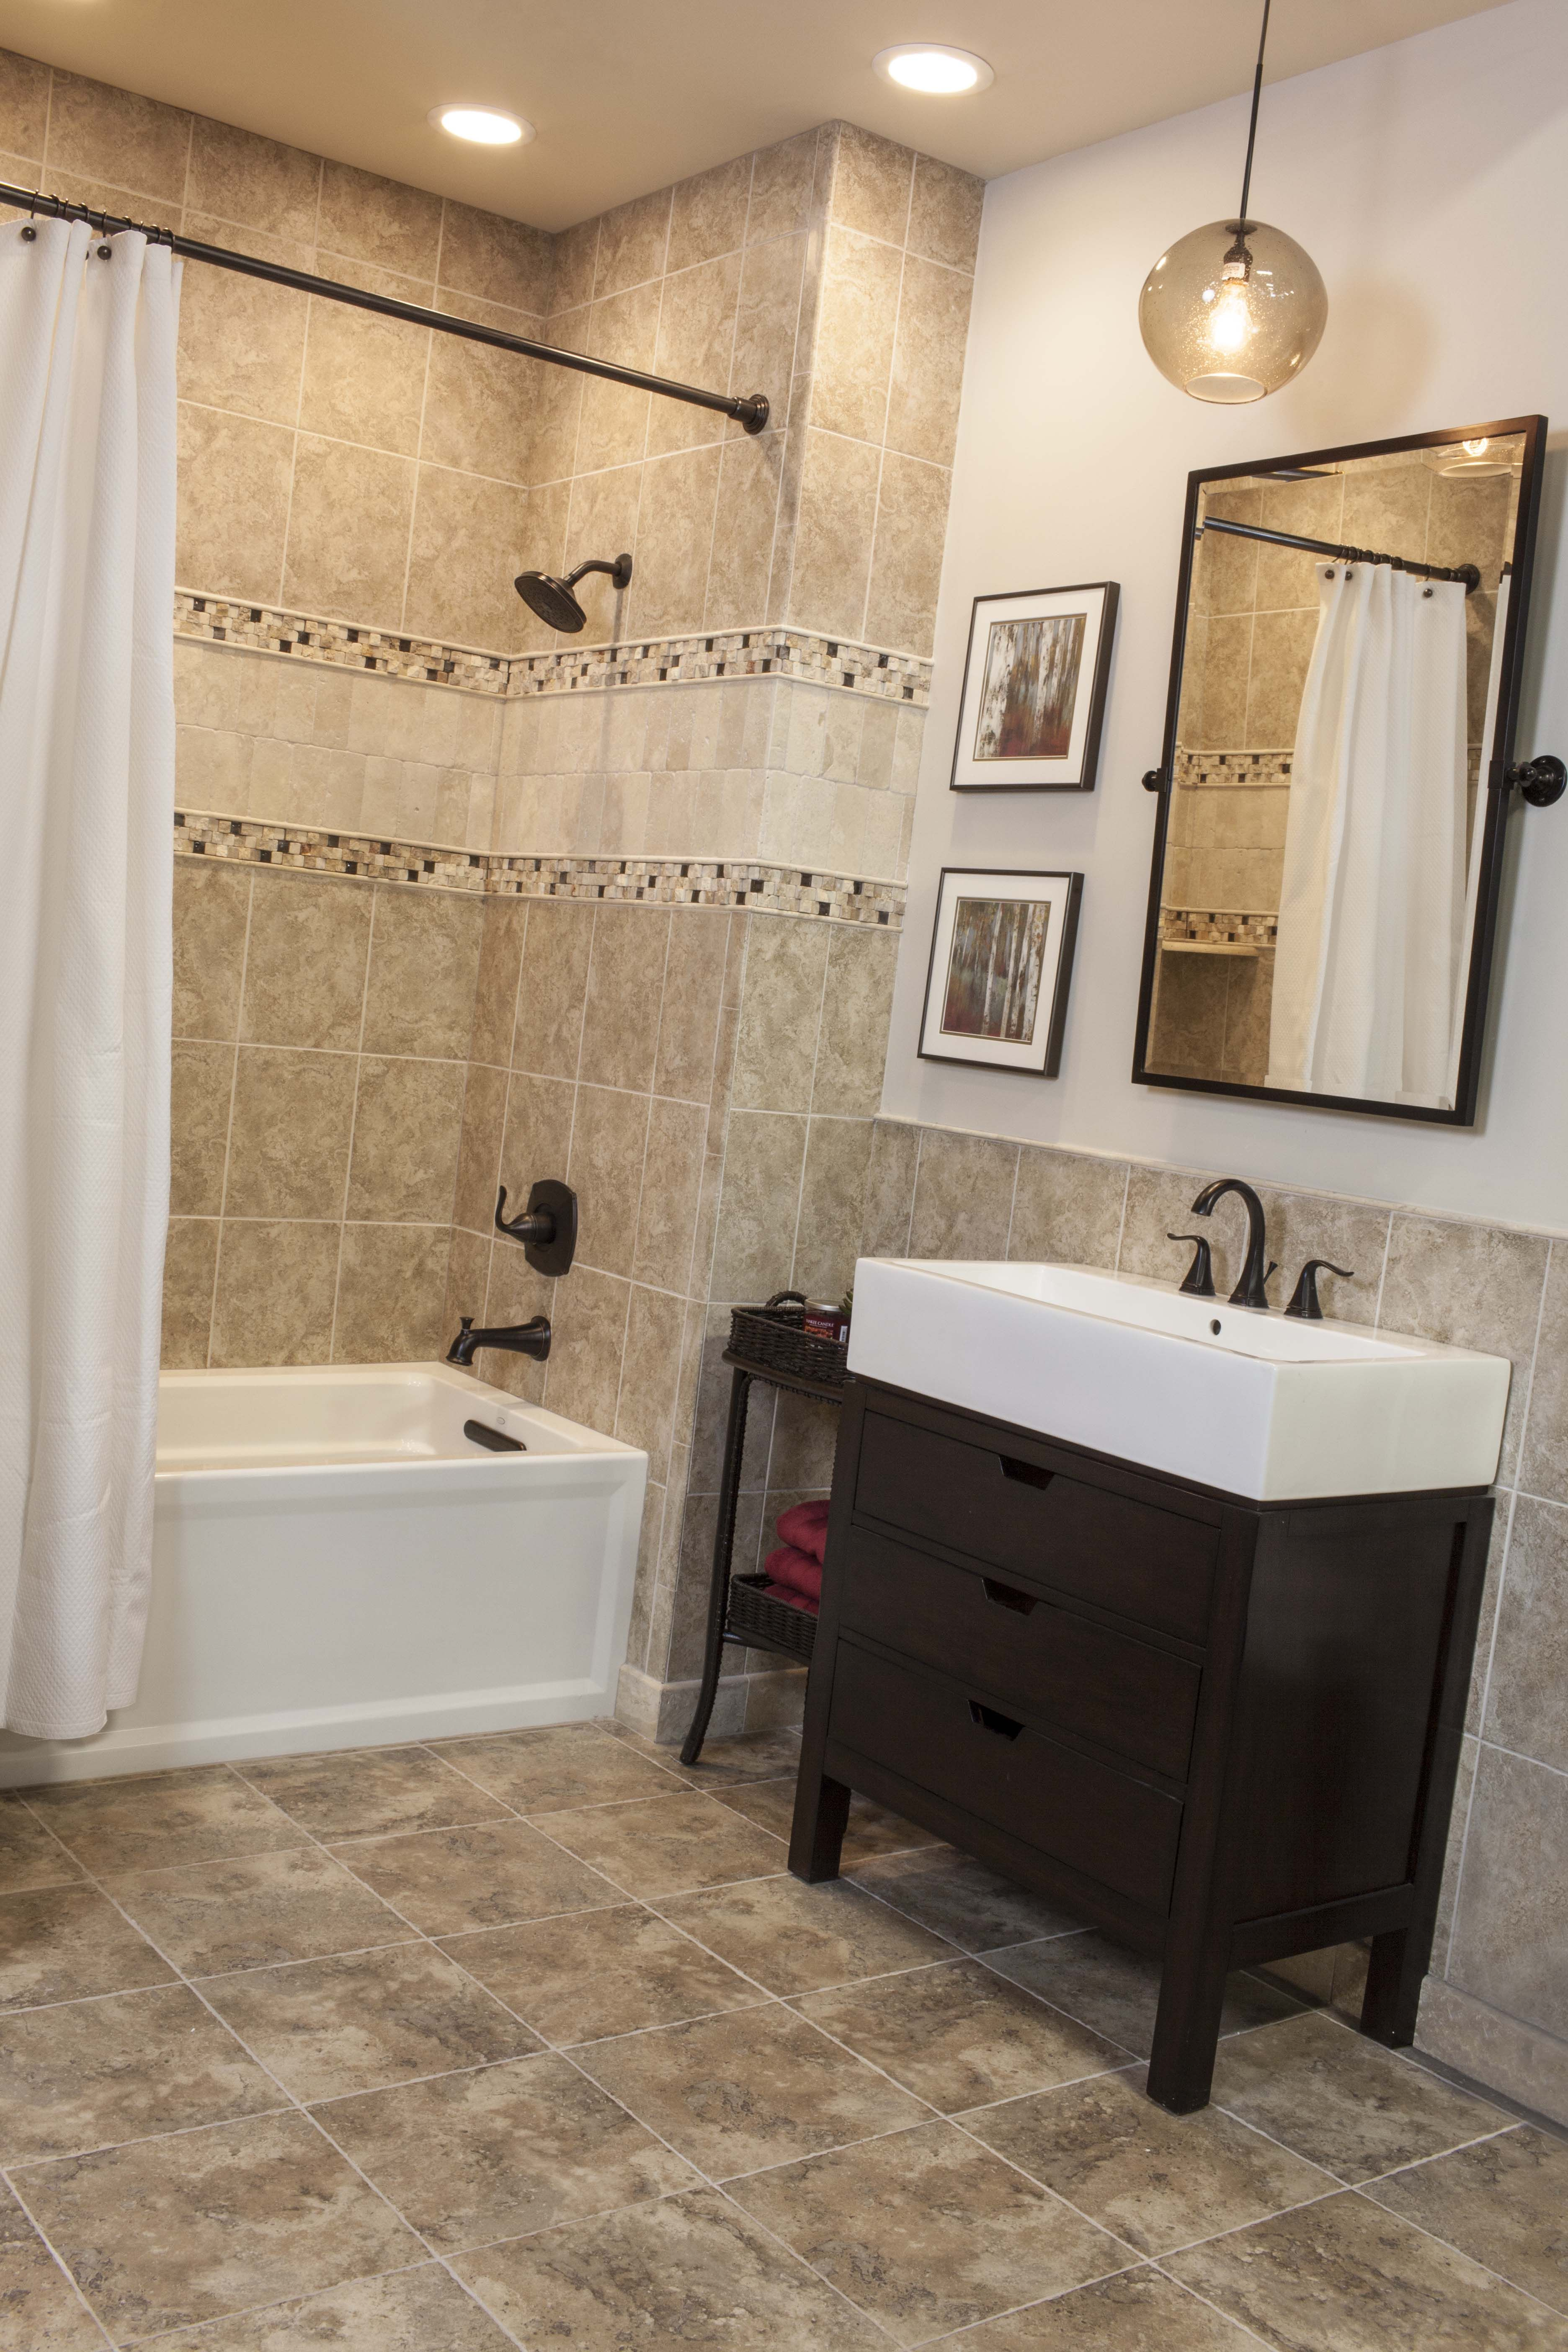 Product Search | The Tile Shop | Budget bathroom remodel ...